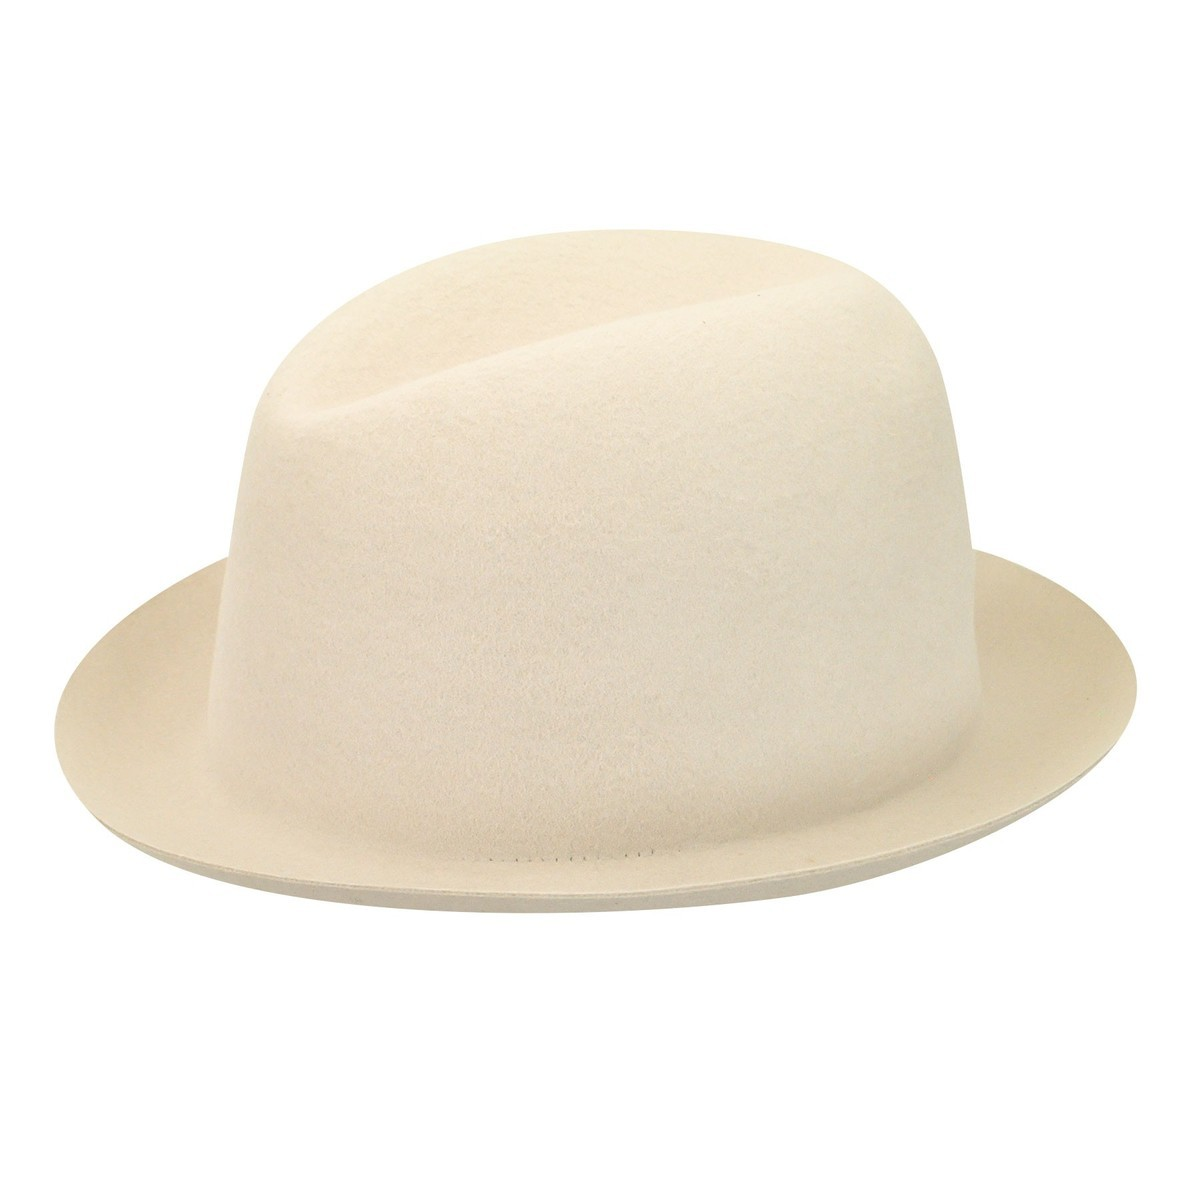 Bailey of Hollywood Chipman Fedora Silverbelly フェドラハット 帽子 Silverbelly